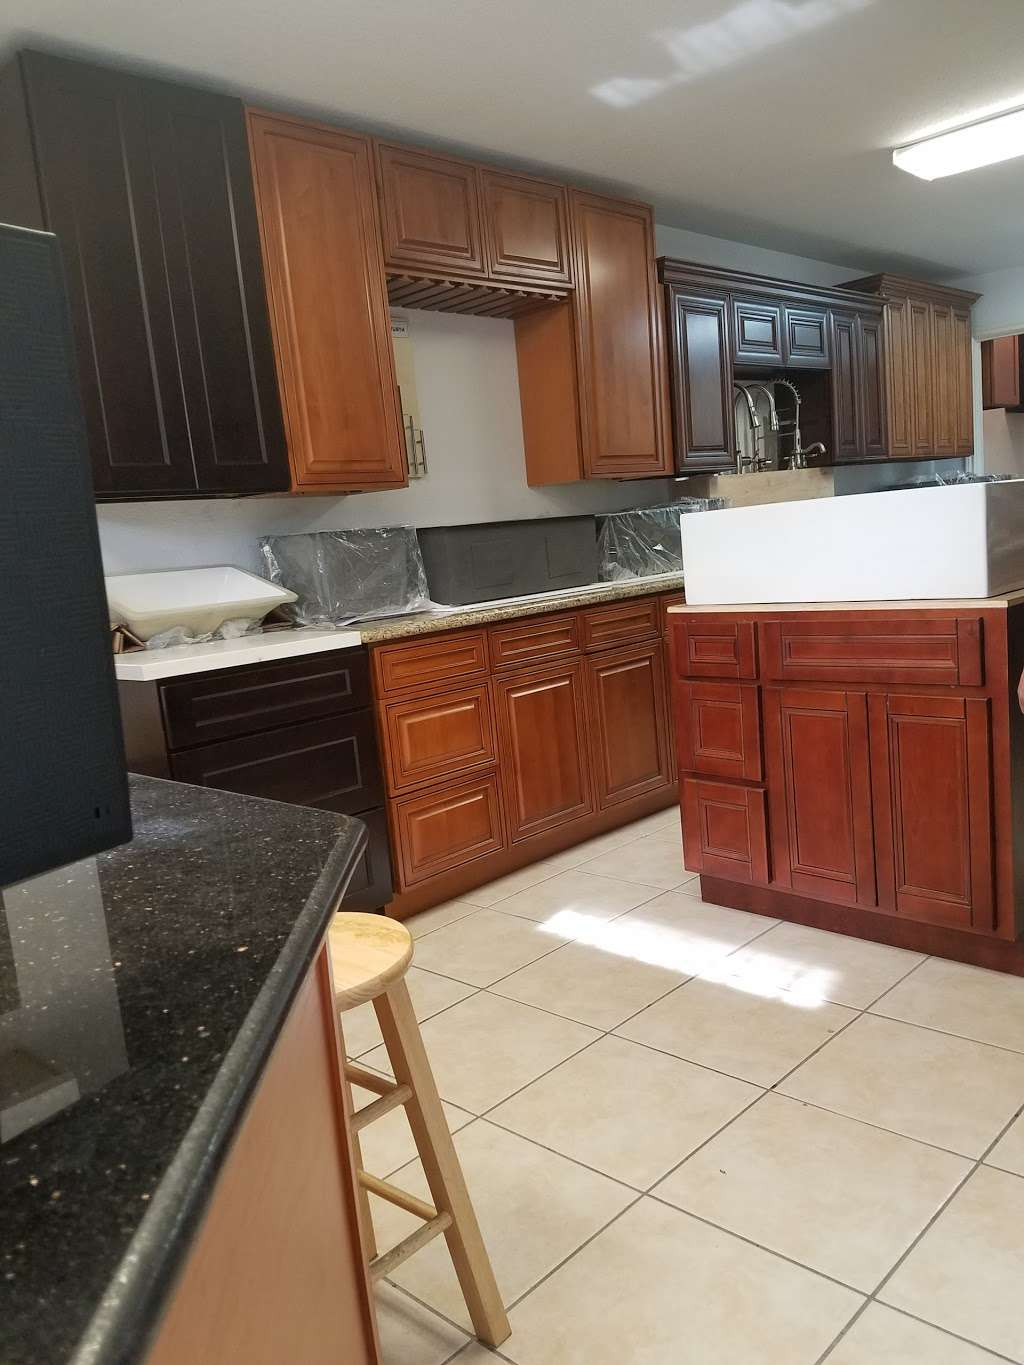 MC Cabinet Inc. - furniture store    Photo 2 of 4   Address: 5005 Gessner Rd A, Houston, TX 77041, USA   Phone: (832) 831-3240